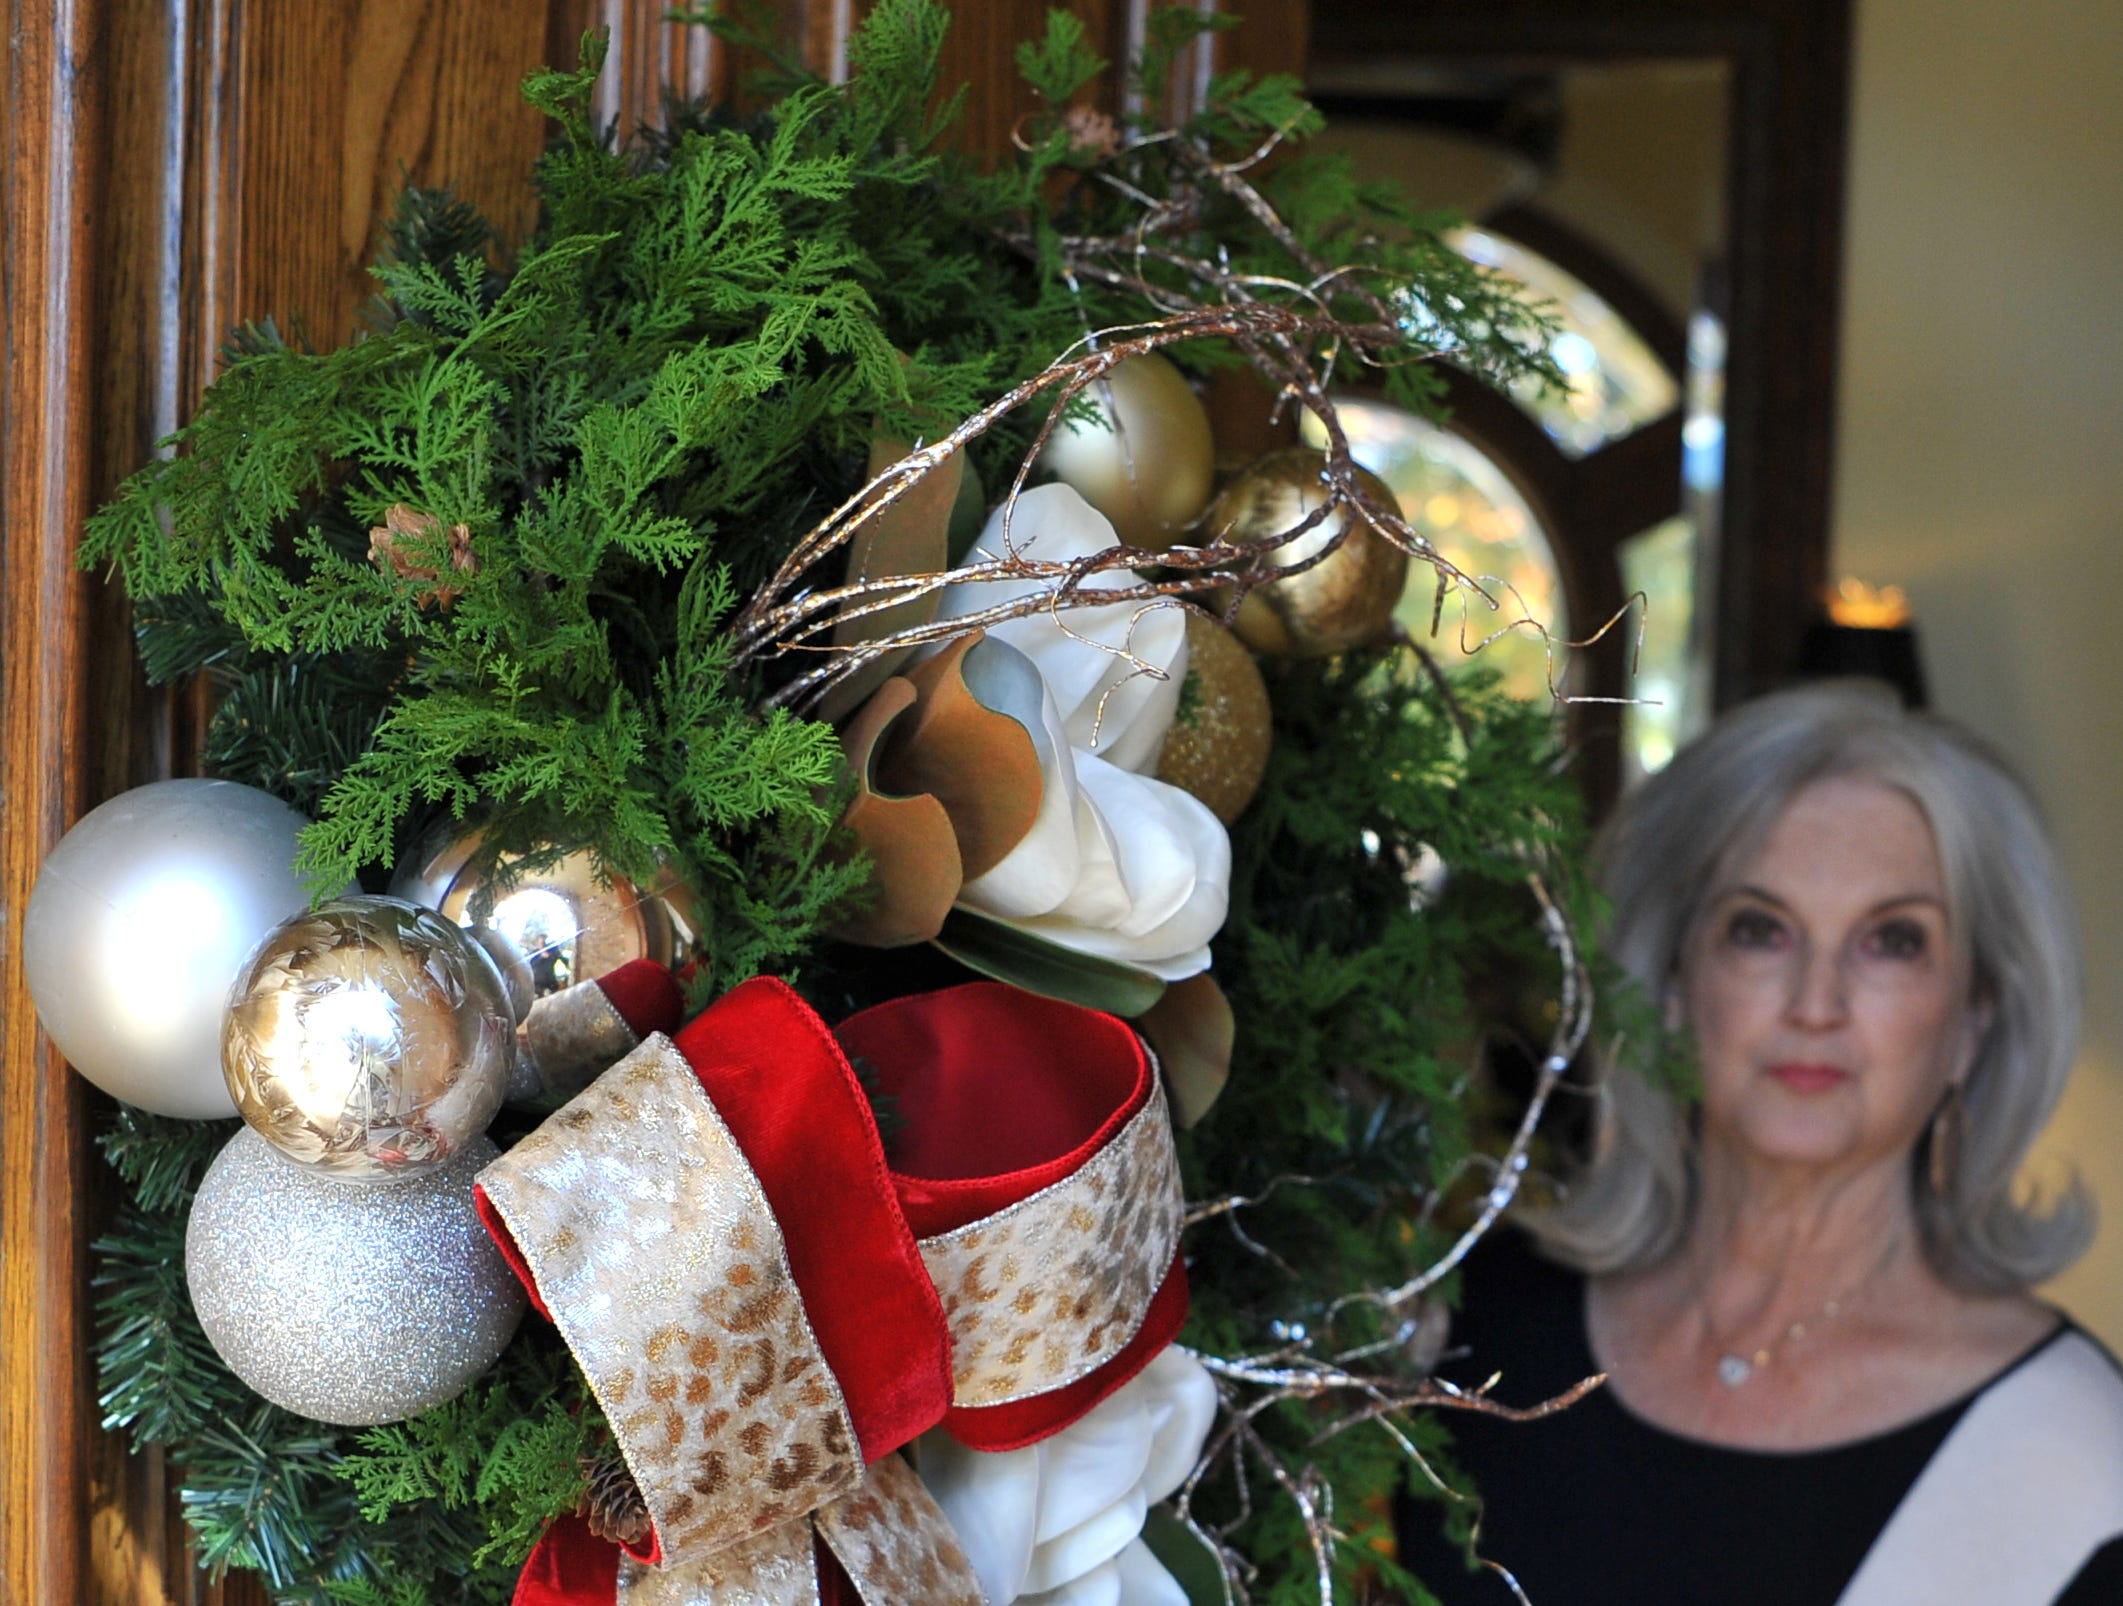 Mary Ann Recht looks at some of her Christmas decorations. The Recht's home will be part of this year's annual Christmas Tour of Homes.